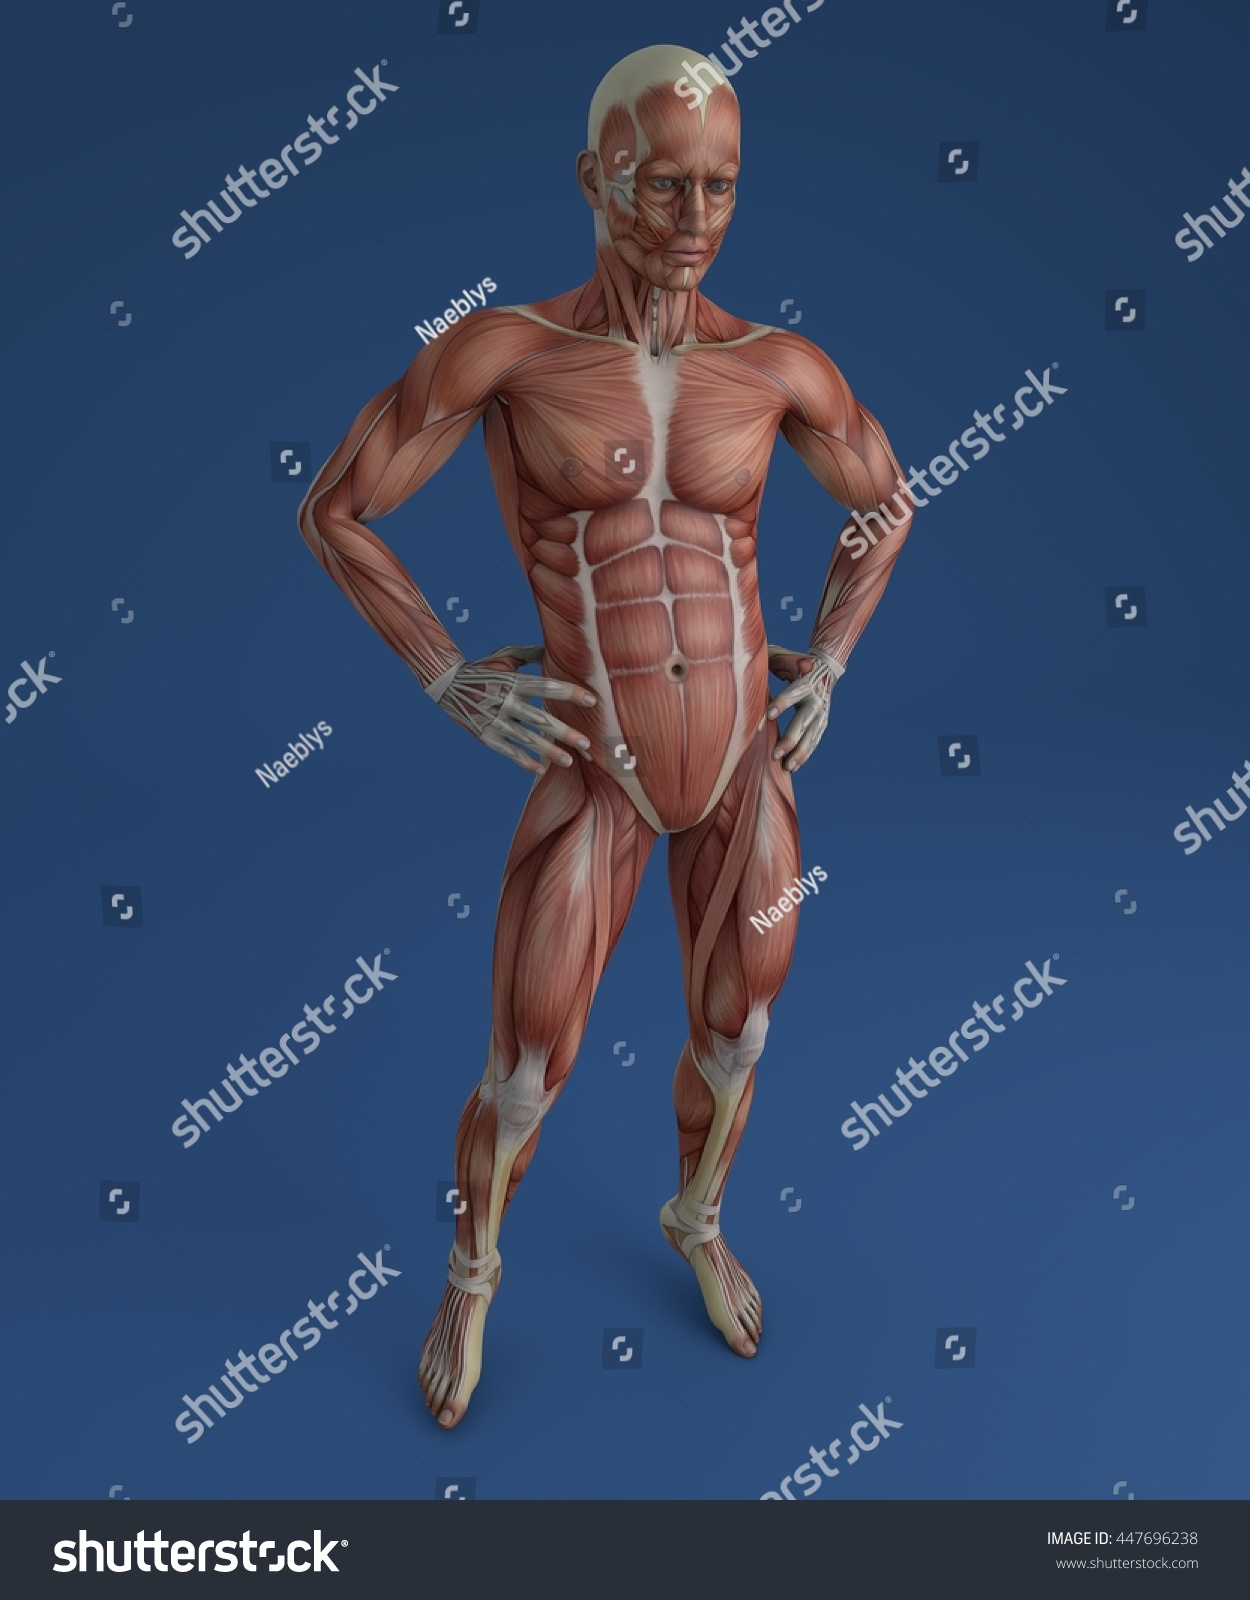 Human Body Muscular System Person Anatomy Stock Illustration